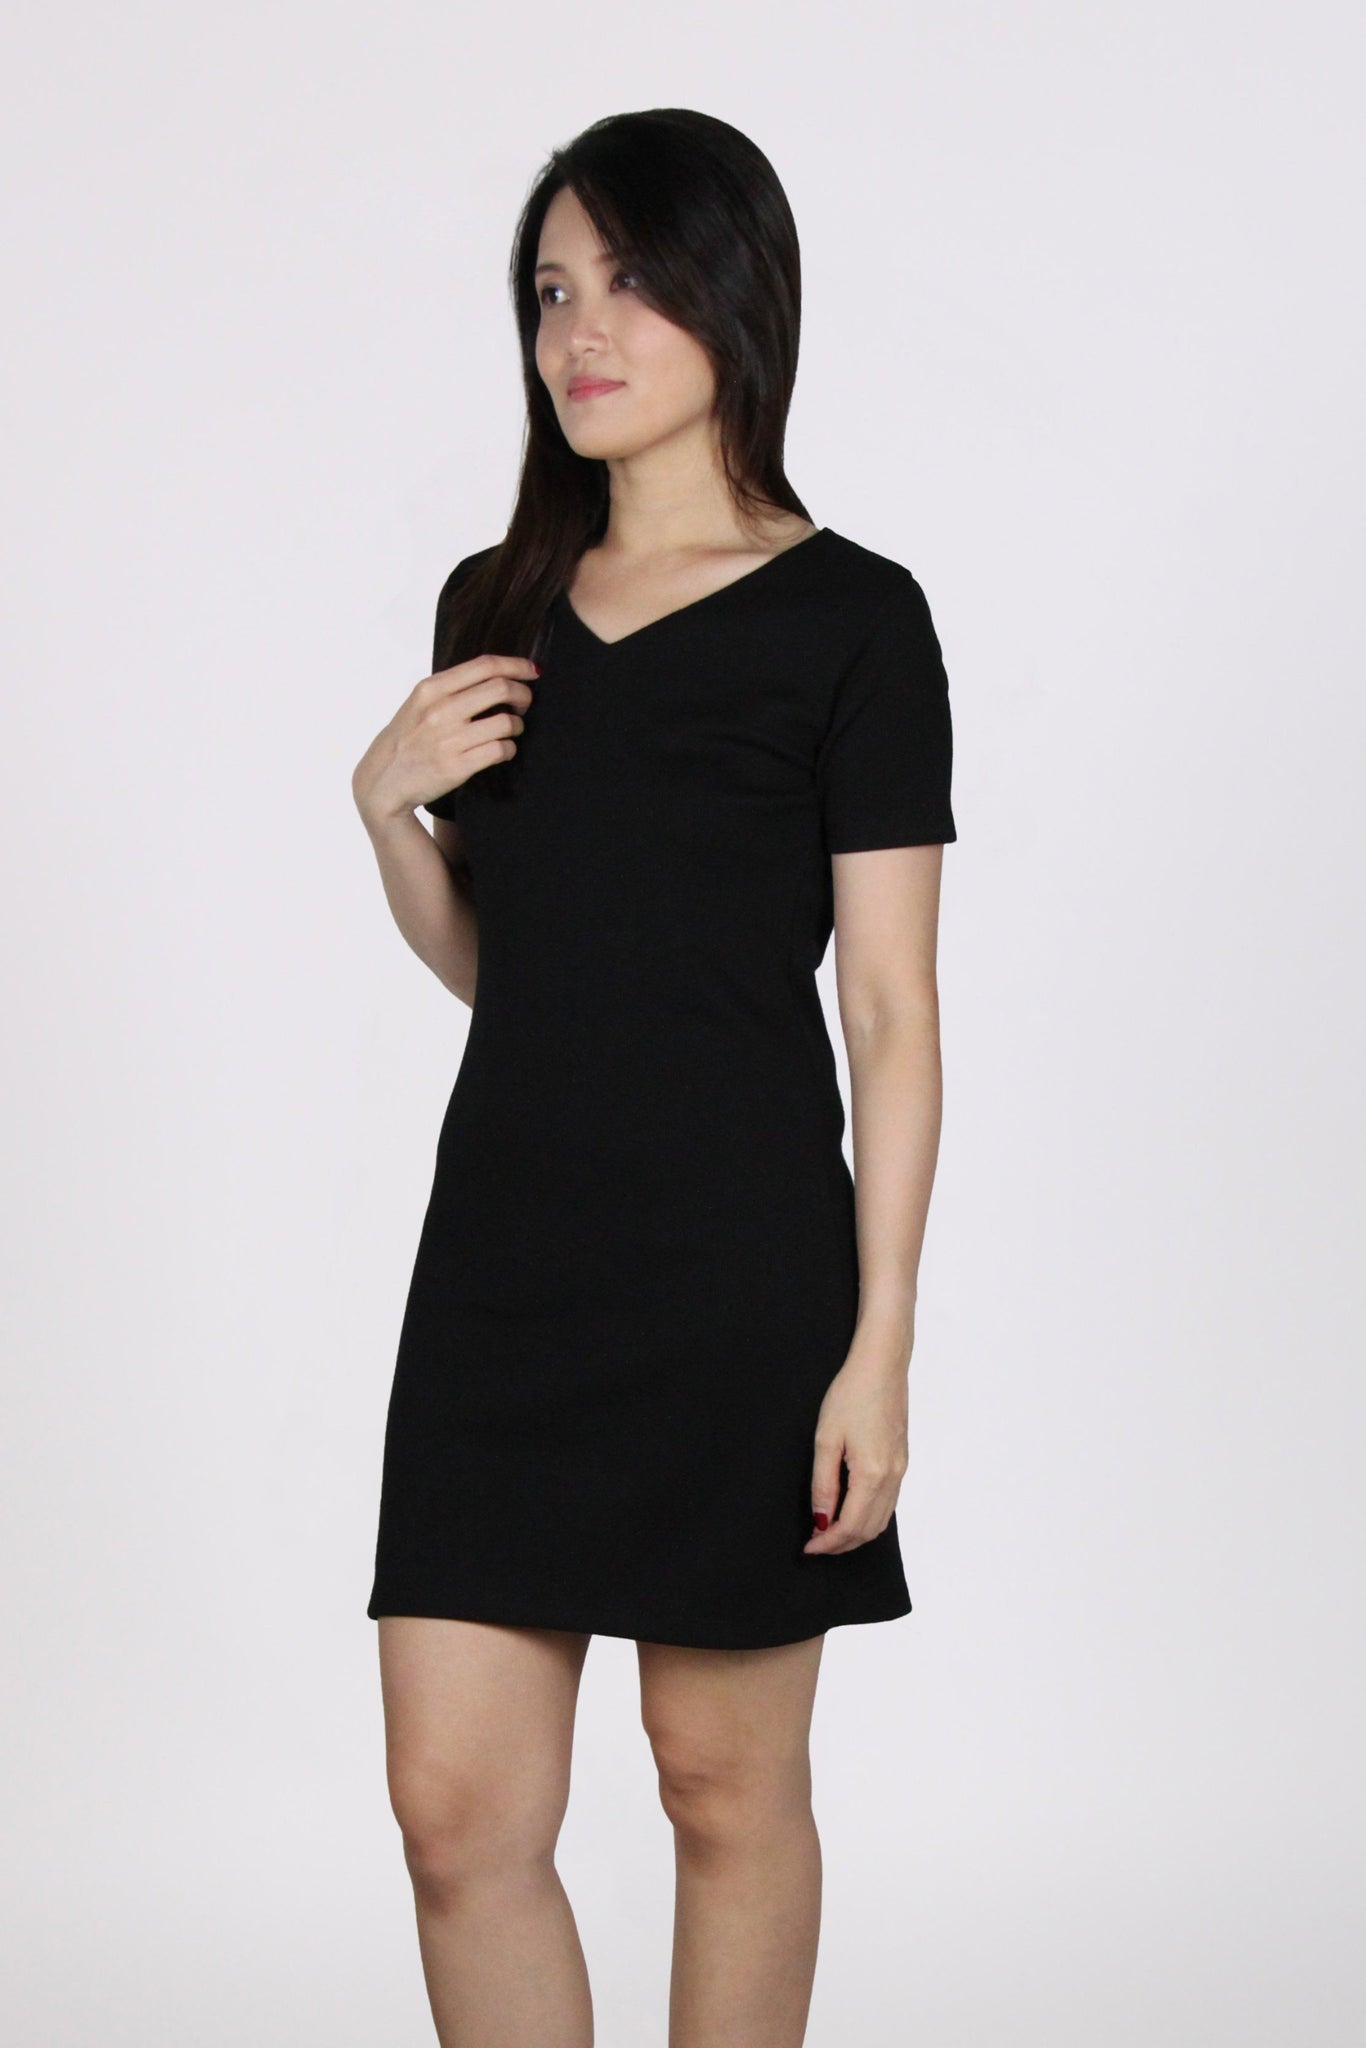 Basic Everyday Comfy V Neck Tee Dress in Black